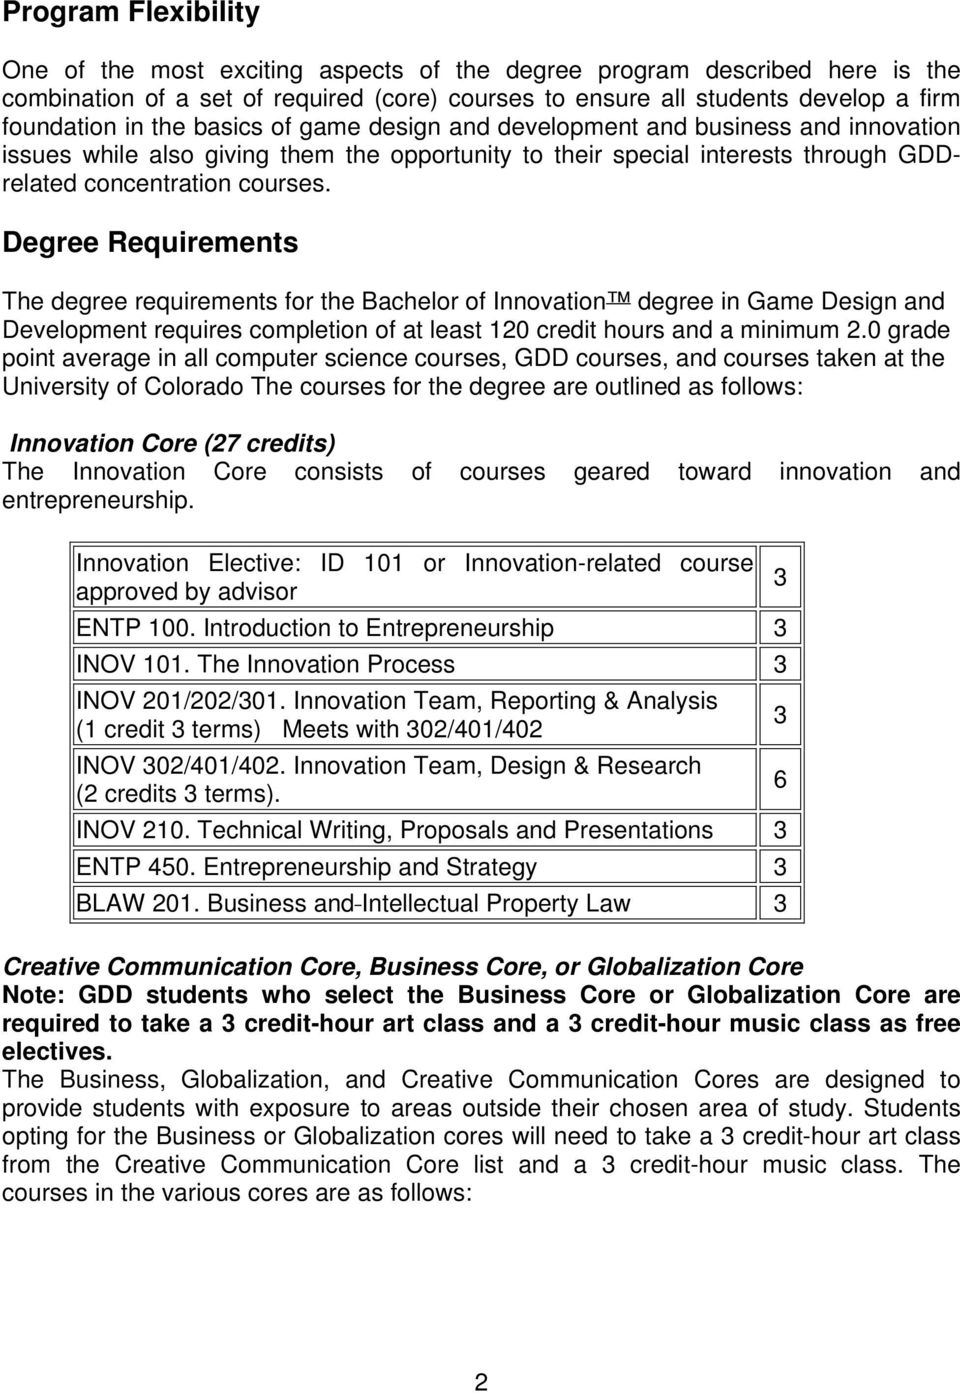 Degree Requirements The degree requirements for the Bachelor of Innovation degree in Game Design and Development requires completion of at least 120 credit hours and a minimum 2.